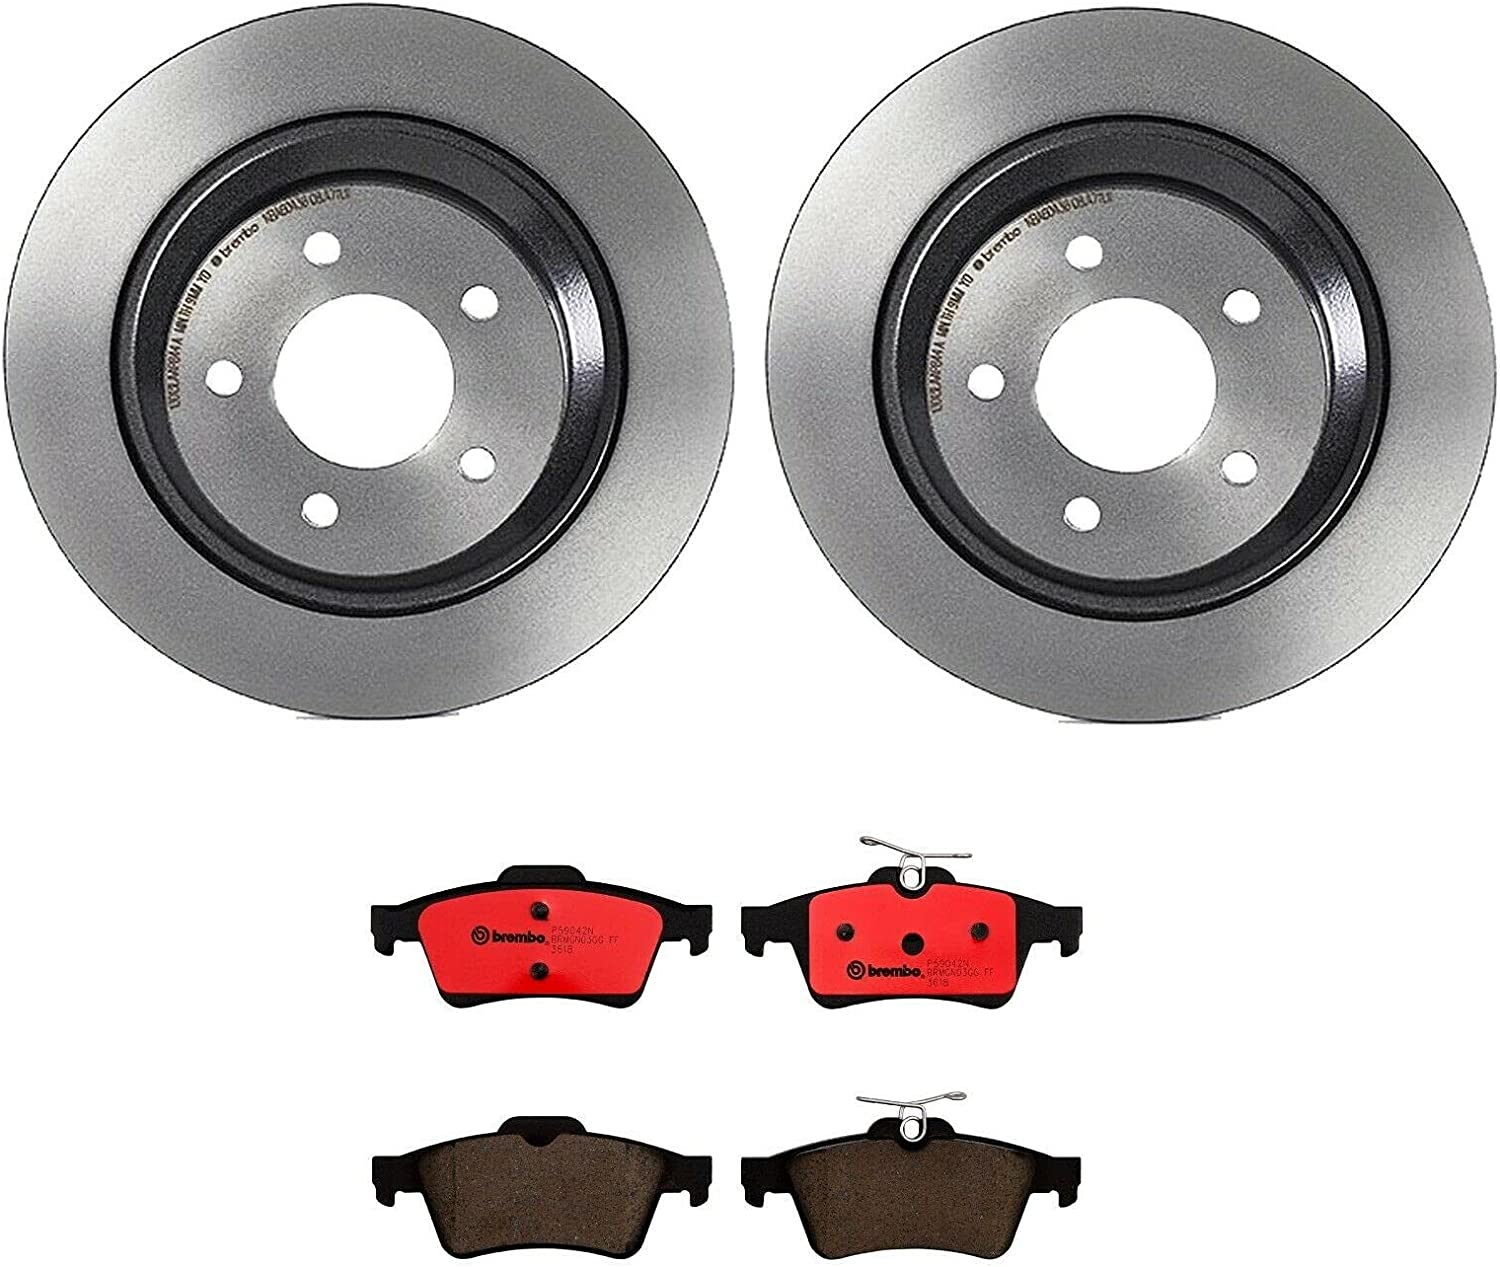 Rear Brake kit UV Spring new work one after another Coated Disc Rotors w Pads Save money Compatible Ceramic